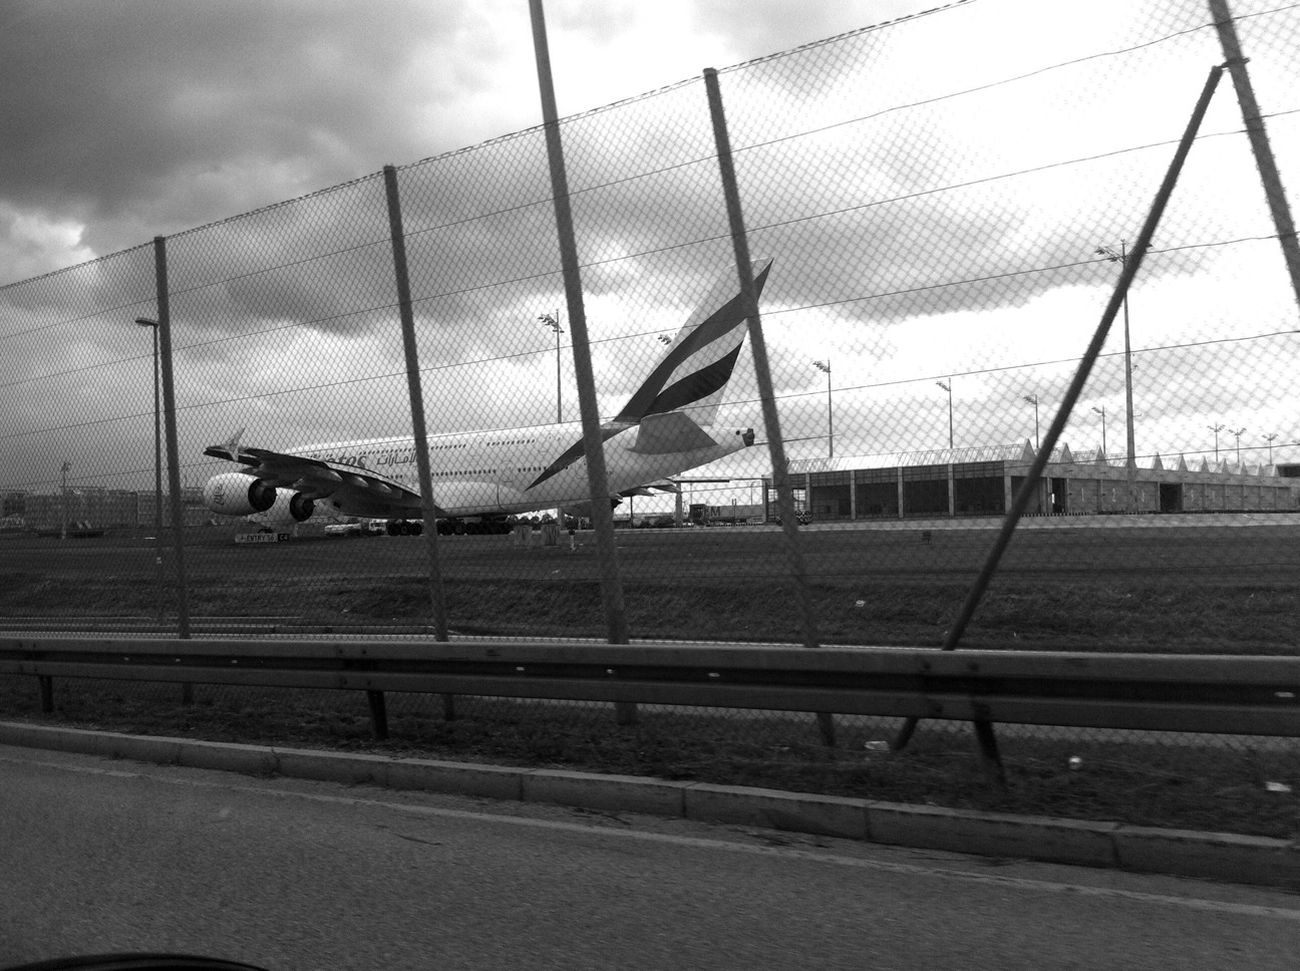 I finally got a snapshot of an Airbus 380! Wow, that plane is huge! I also got a new twitter account: @ghitahero follow me if you want. I tweet about photography and creative stuff. www.twitter.com/ghitahero Blackandwhite Plane Monochrome A380